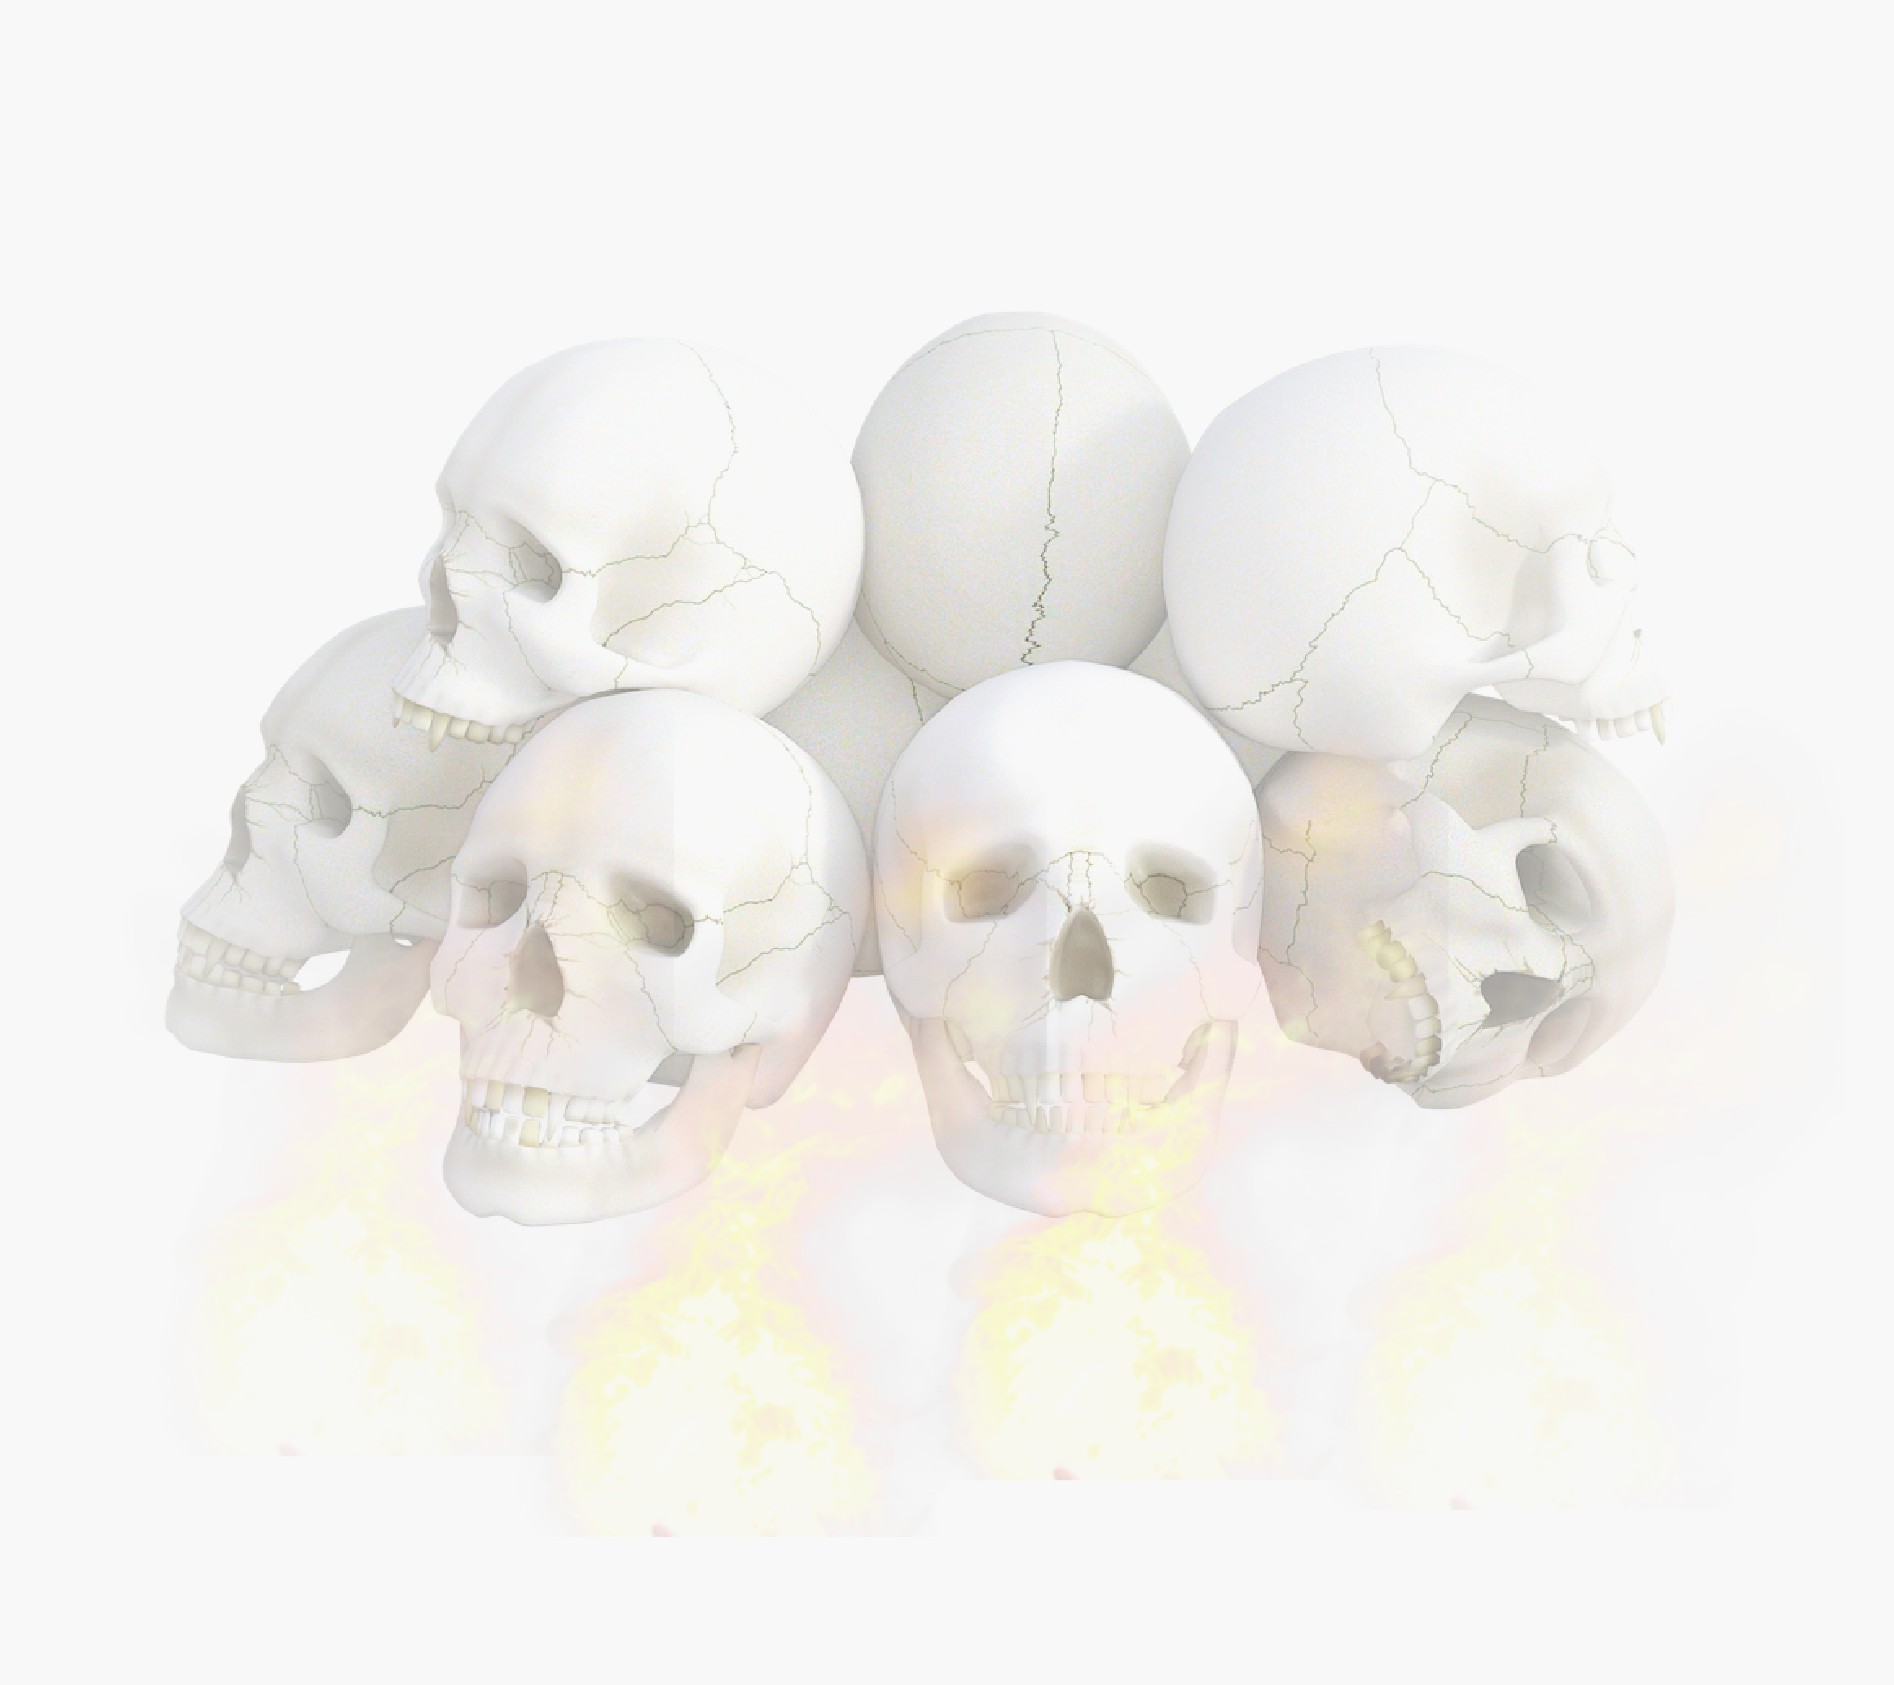 Skulls and light fire.